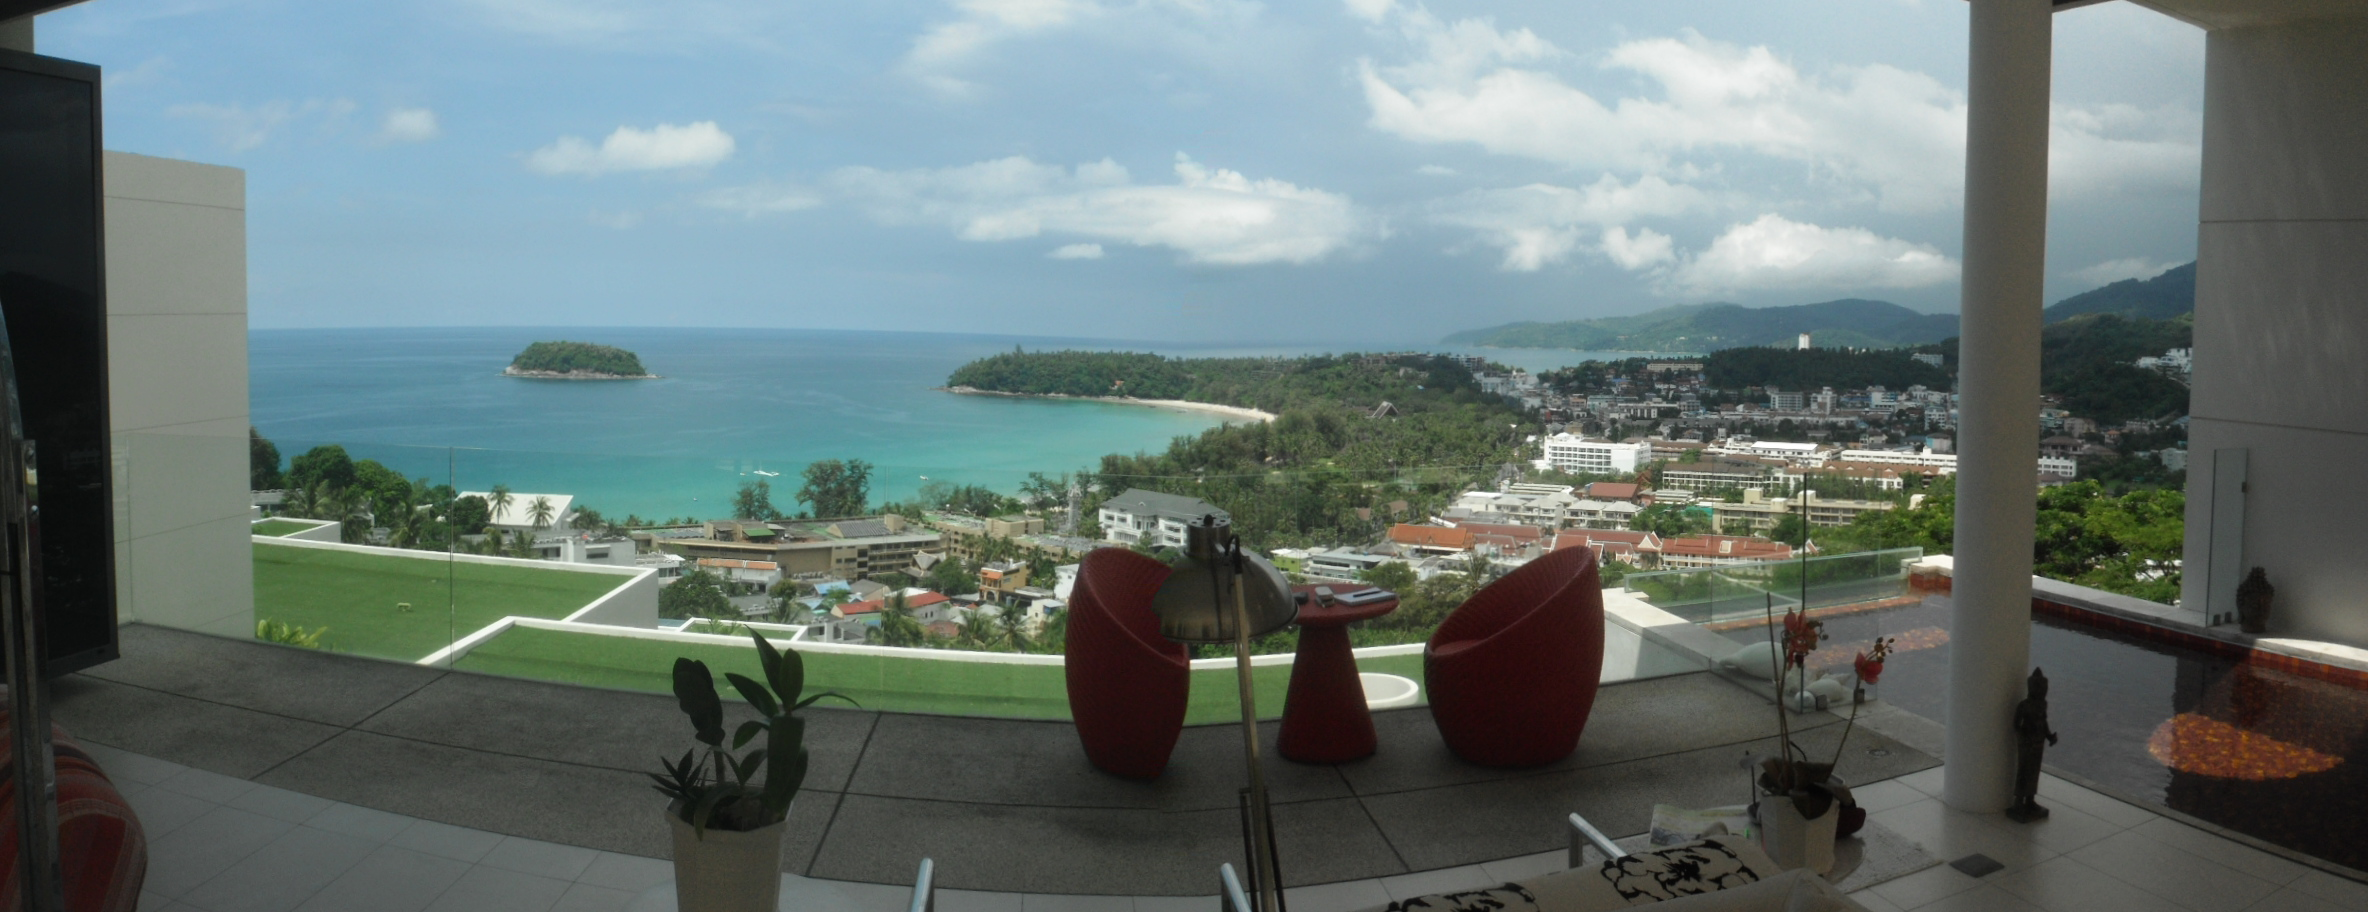 Kata Noi Beach Properties for Rent and Sale | eT hus Real Estate Agency